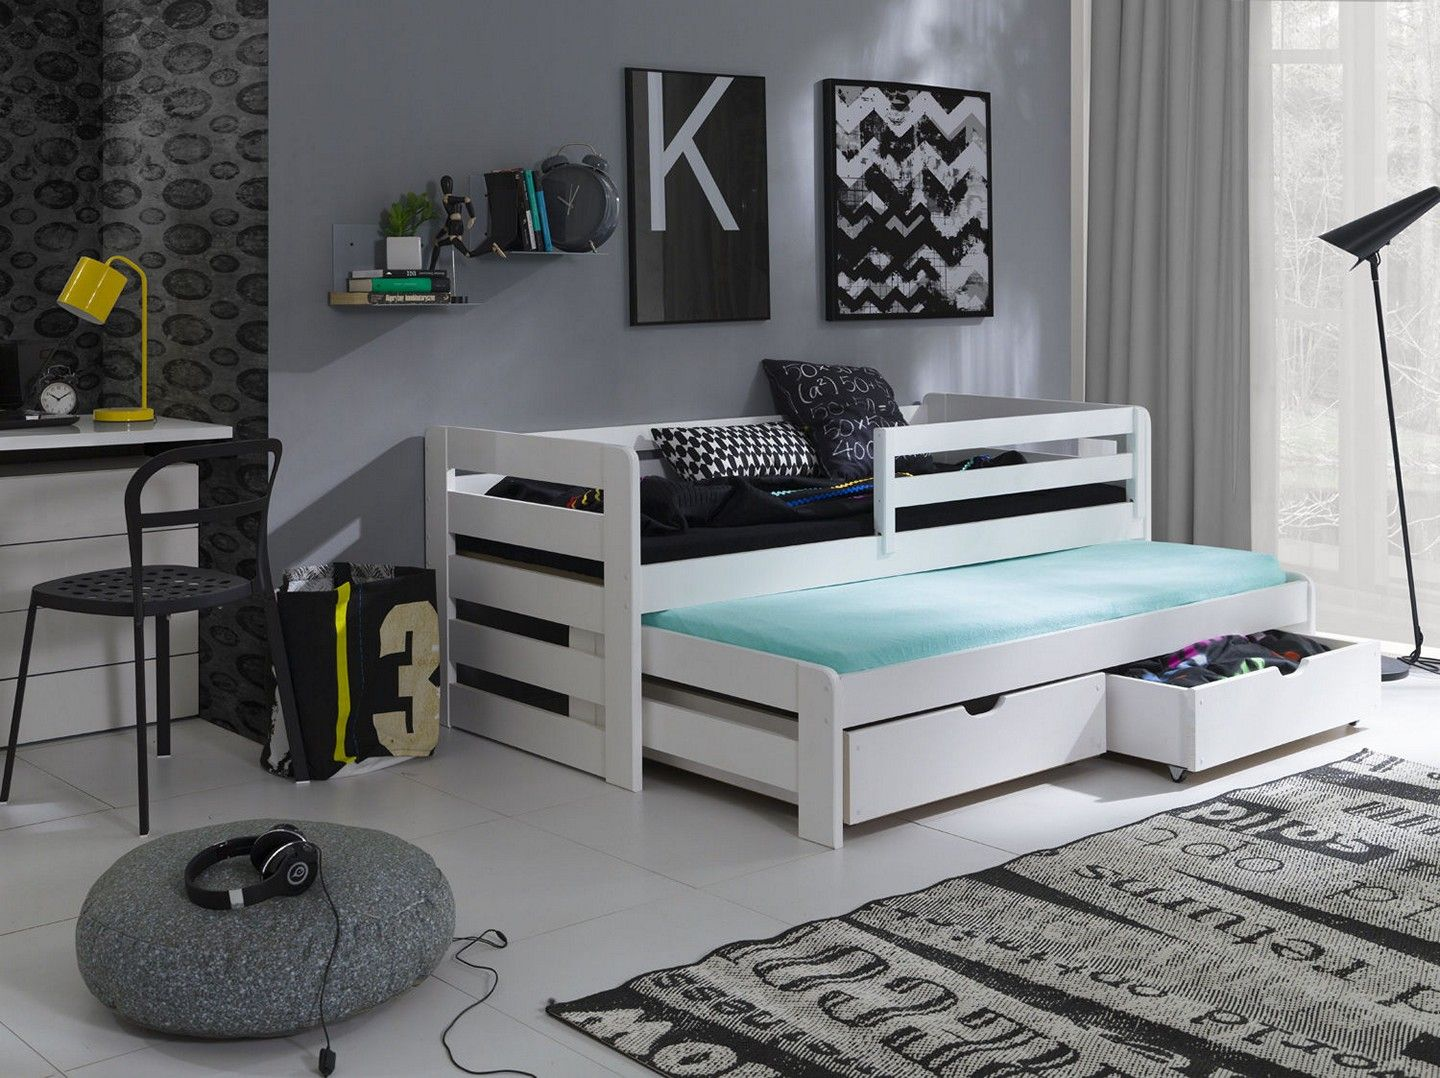 clothing storage ideas for small bedrooms rooms cool teen boy bedroom - Storage Ideas For Small Bedrooms